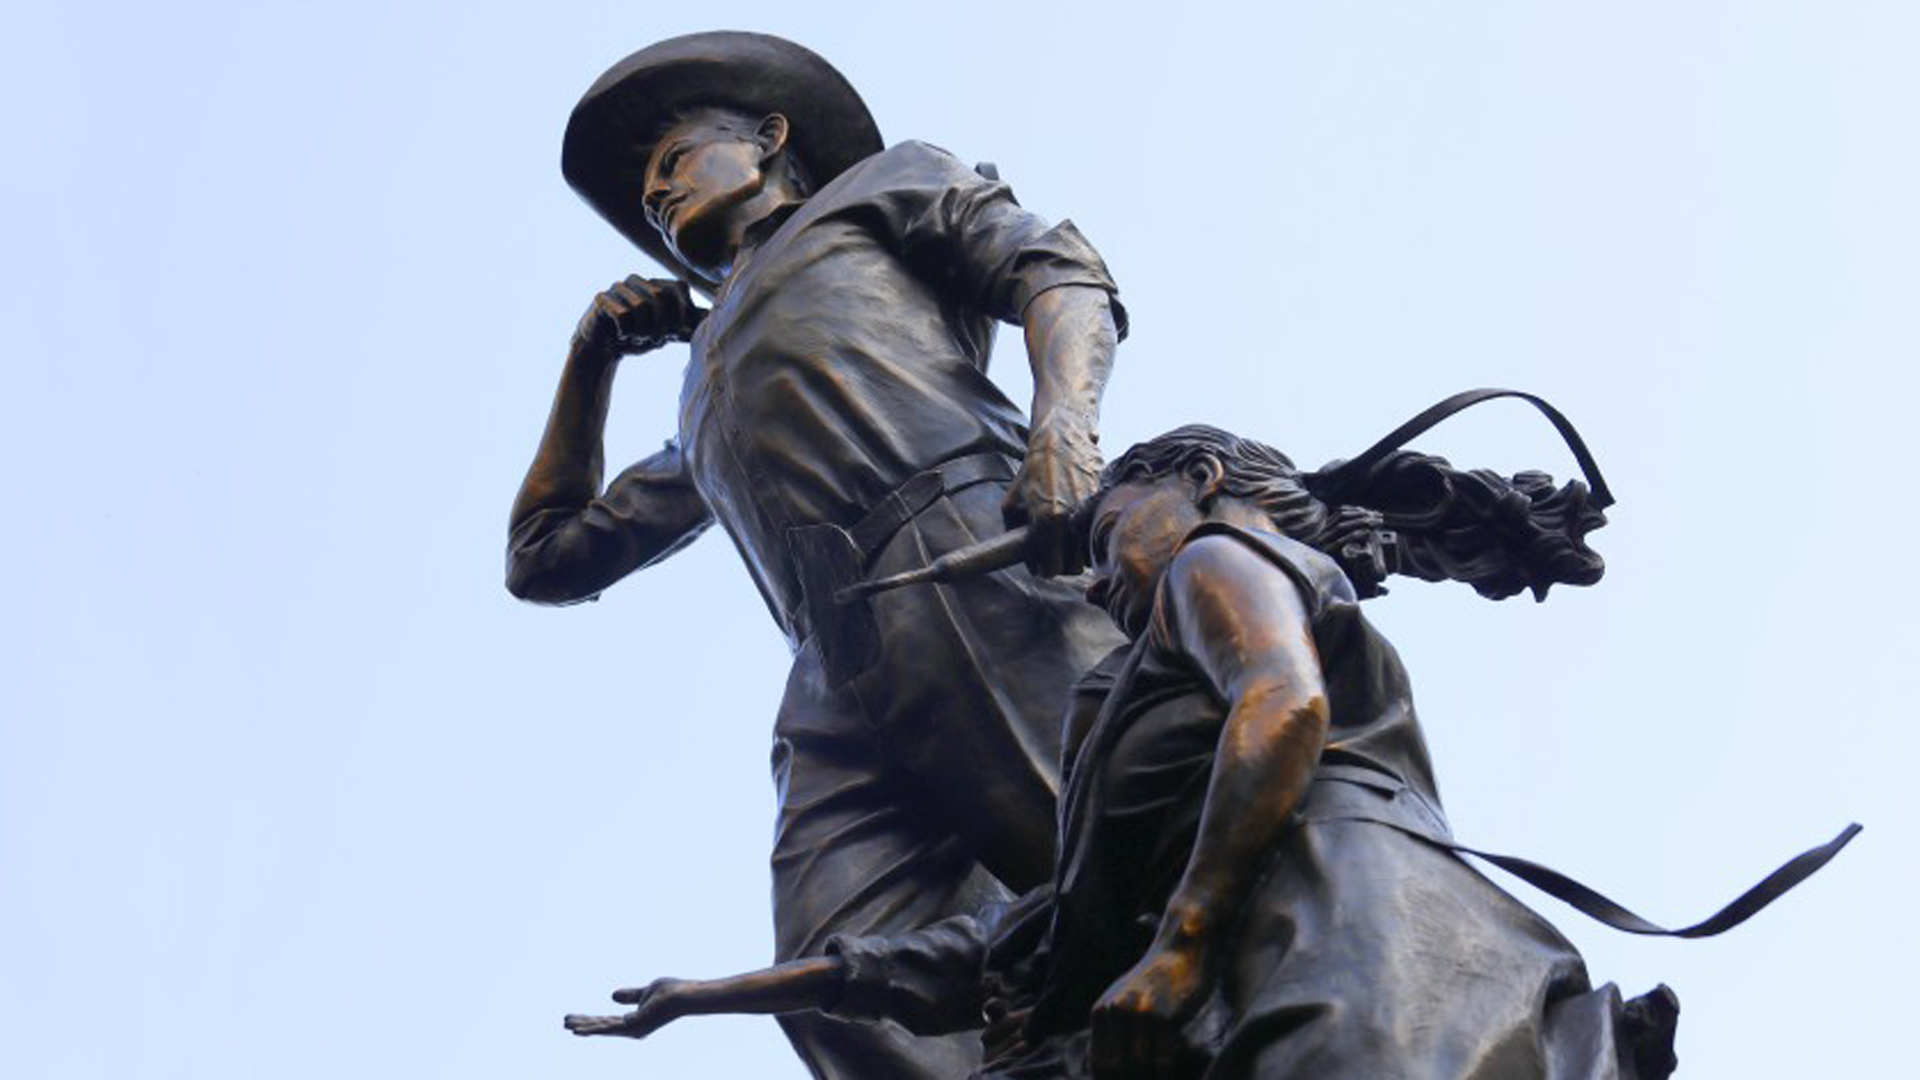 The Bracero Monument, a sculpture by Dan Medina that stands in Migrant's Bend Plaza in downtown Los Angeles, pays tribute to the Mexican workers who temporarily migrated to the U.S. during and after World War II to help fill labor shortages. (Credit: Carolyn Cole / Los Angeles Times)